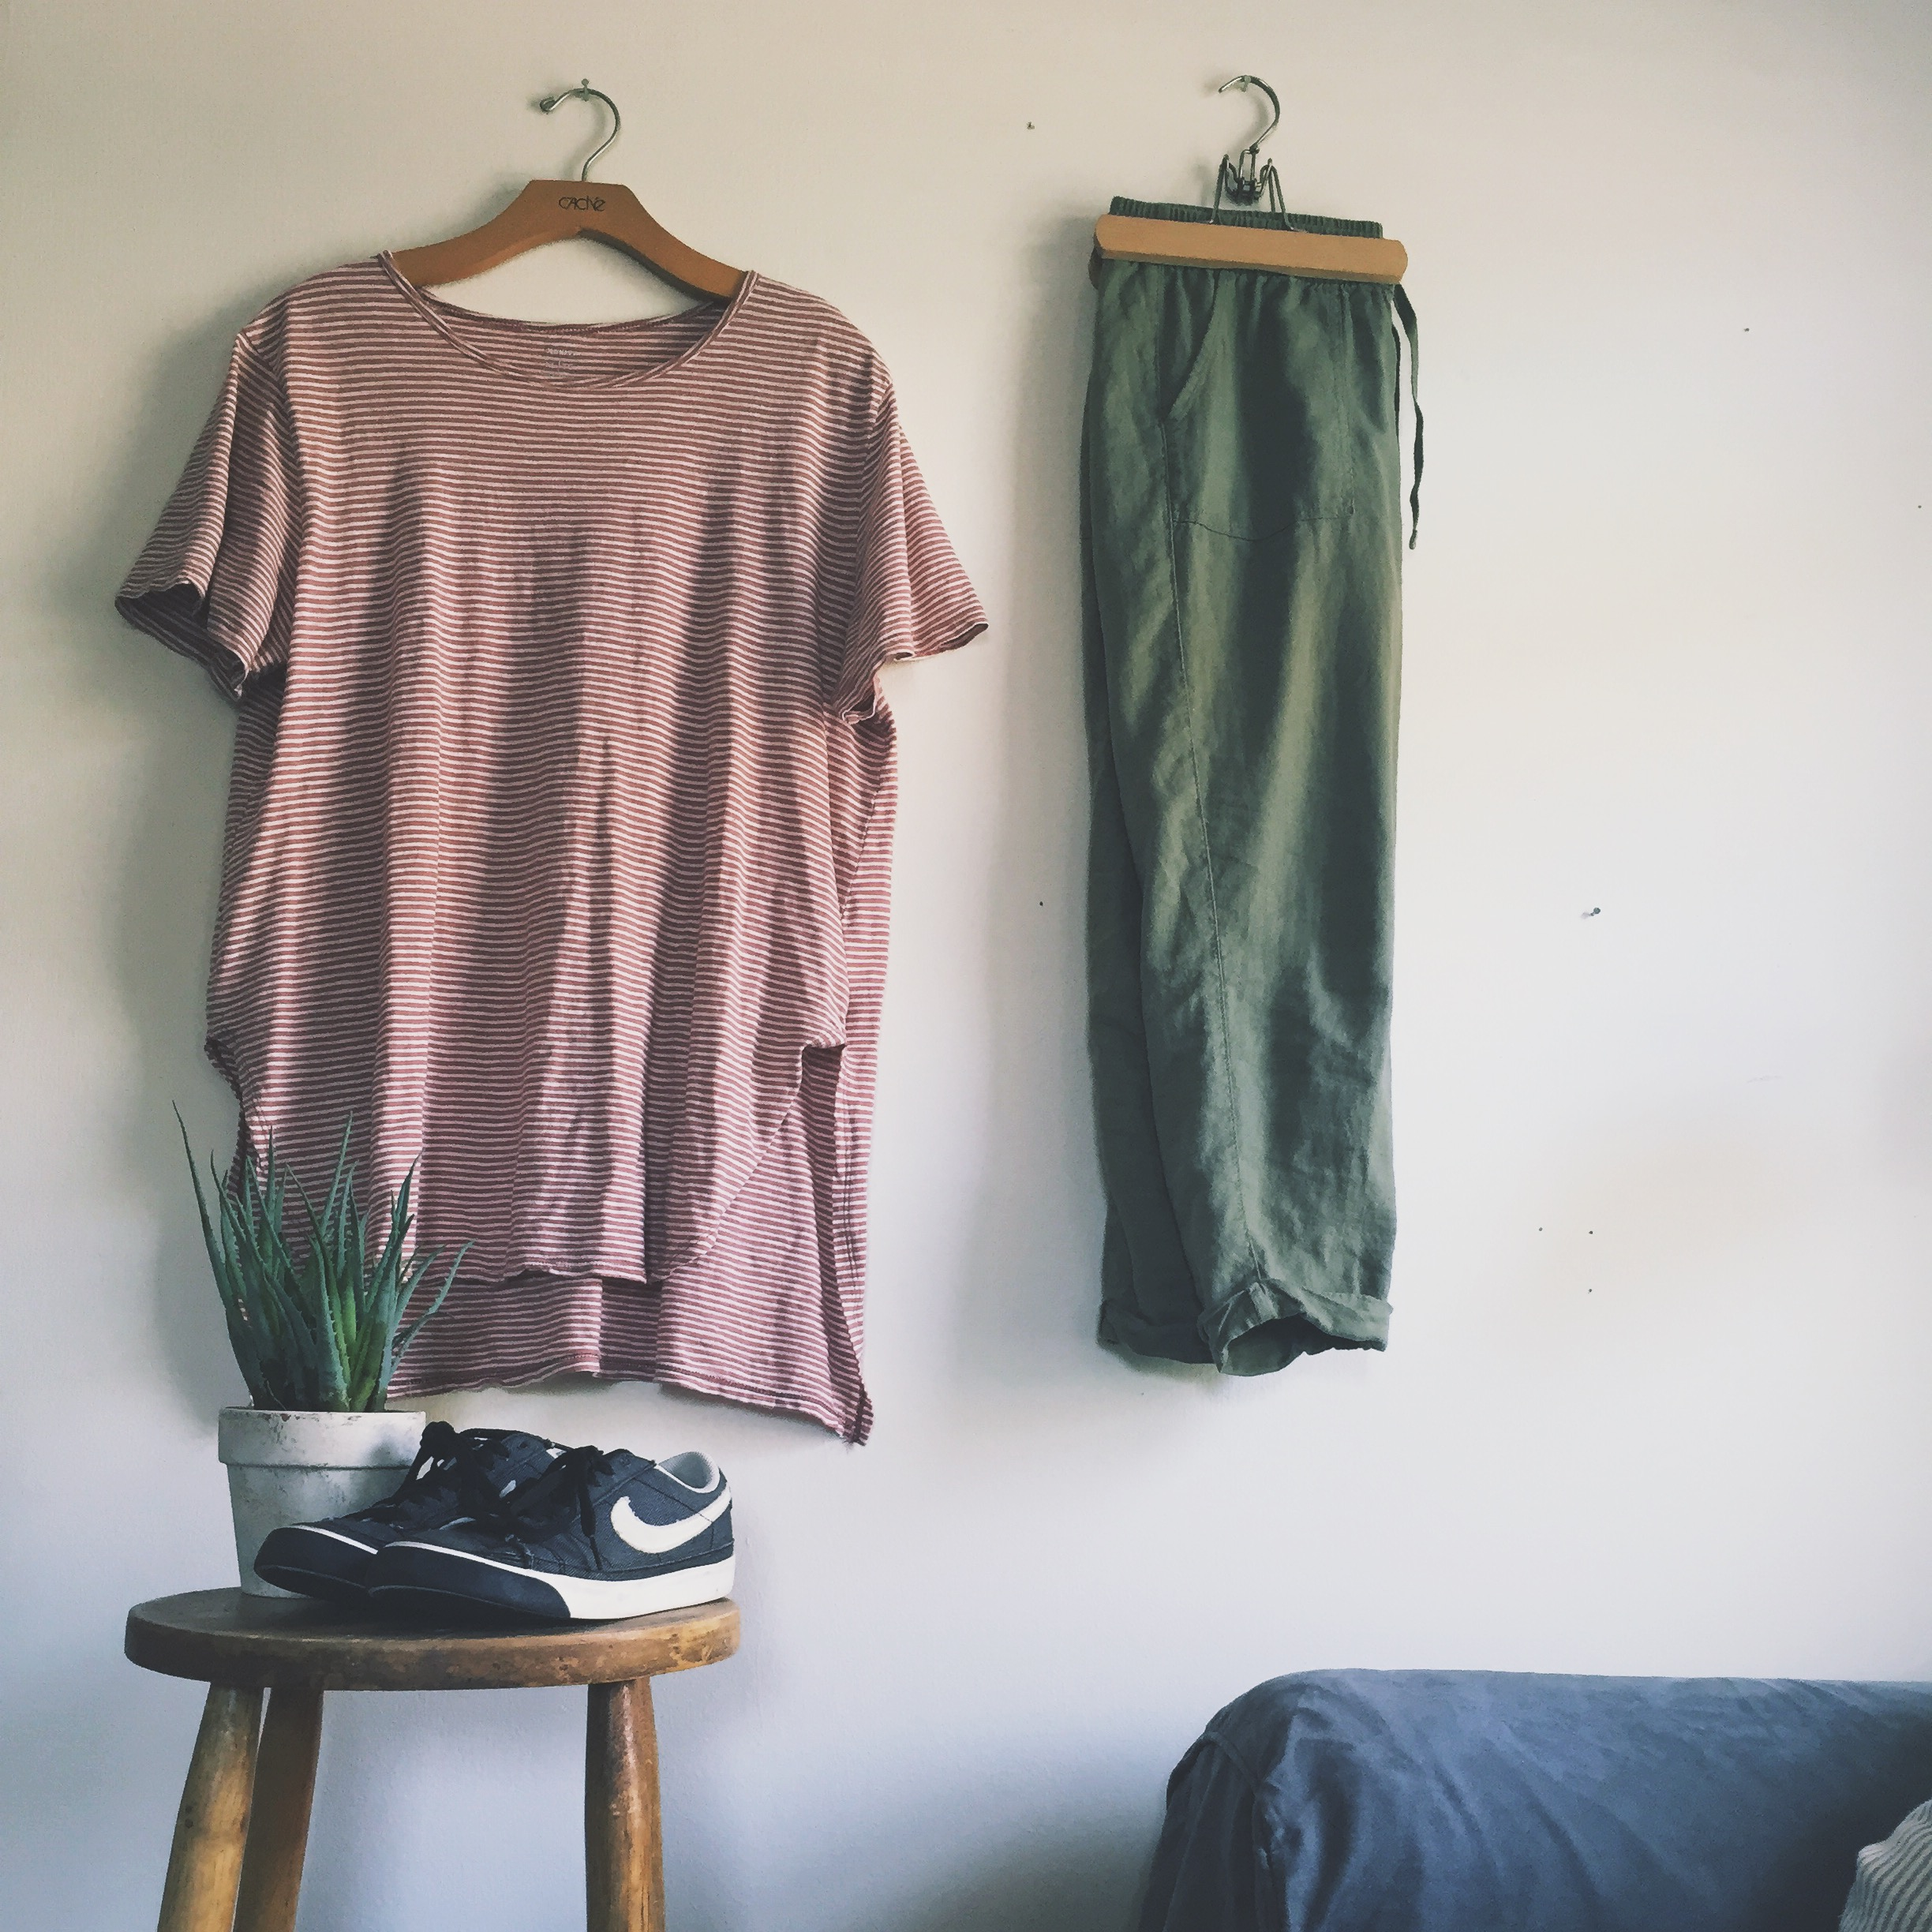 casual outfit, what to wear for photo session, cute, casual, fashion, outfits, comfortable, photography, fashion help, i don't have anything to wear